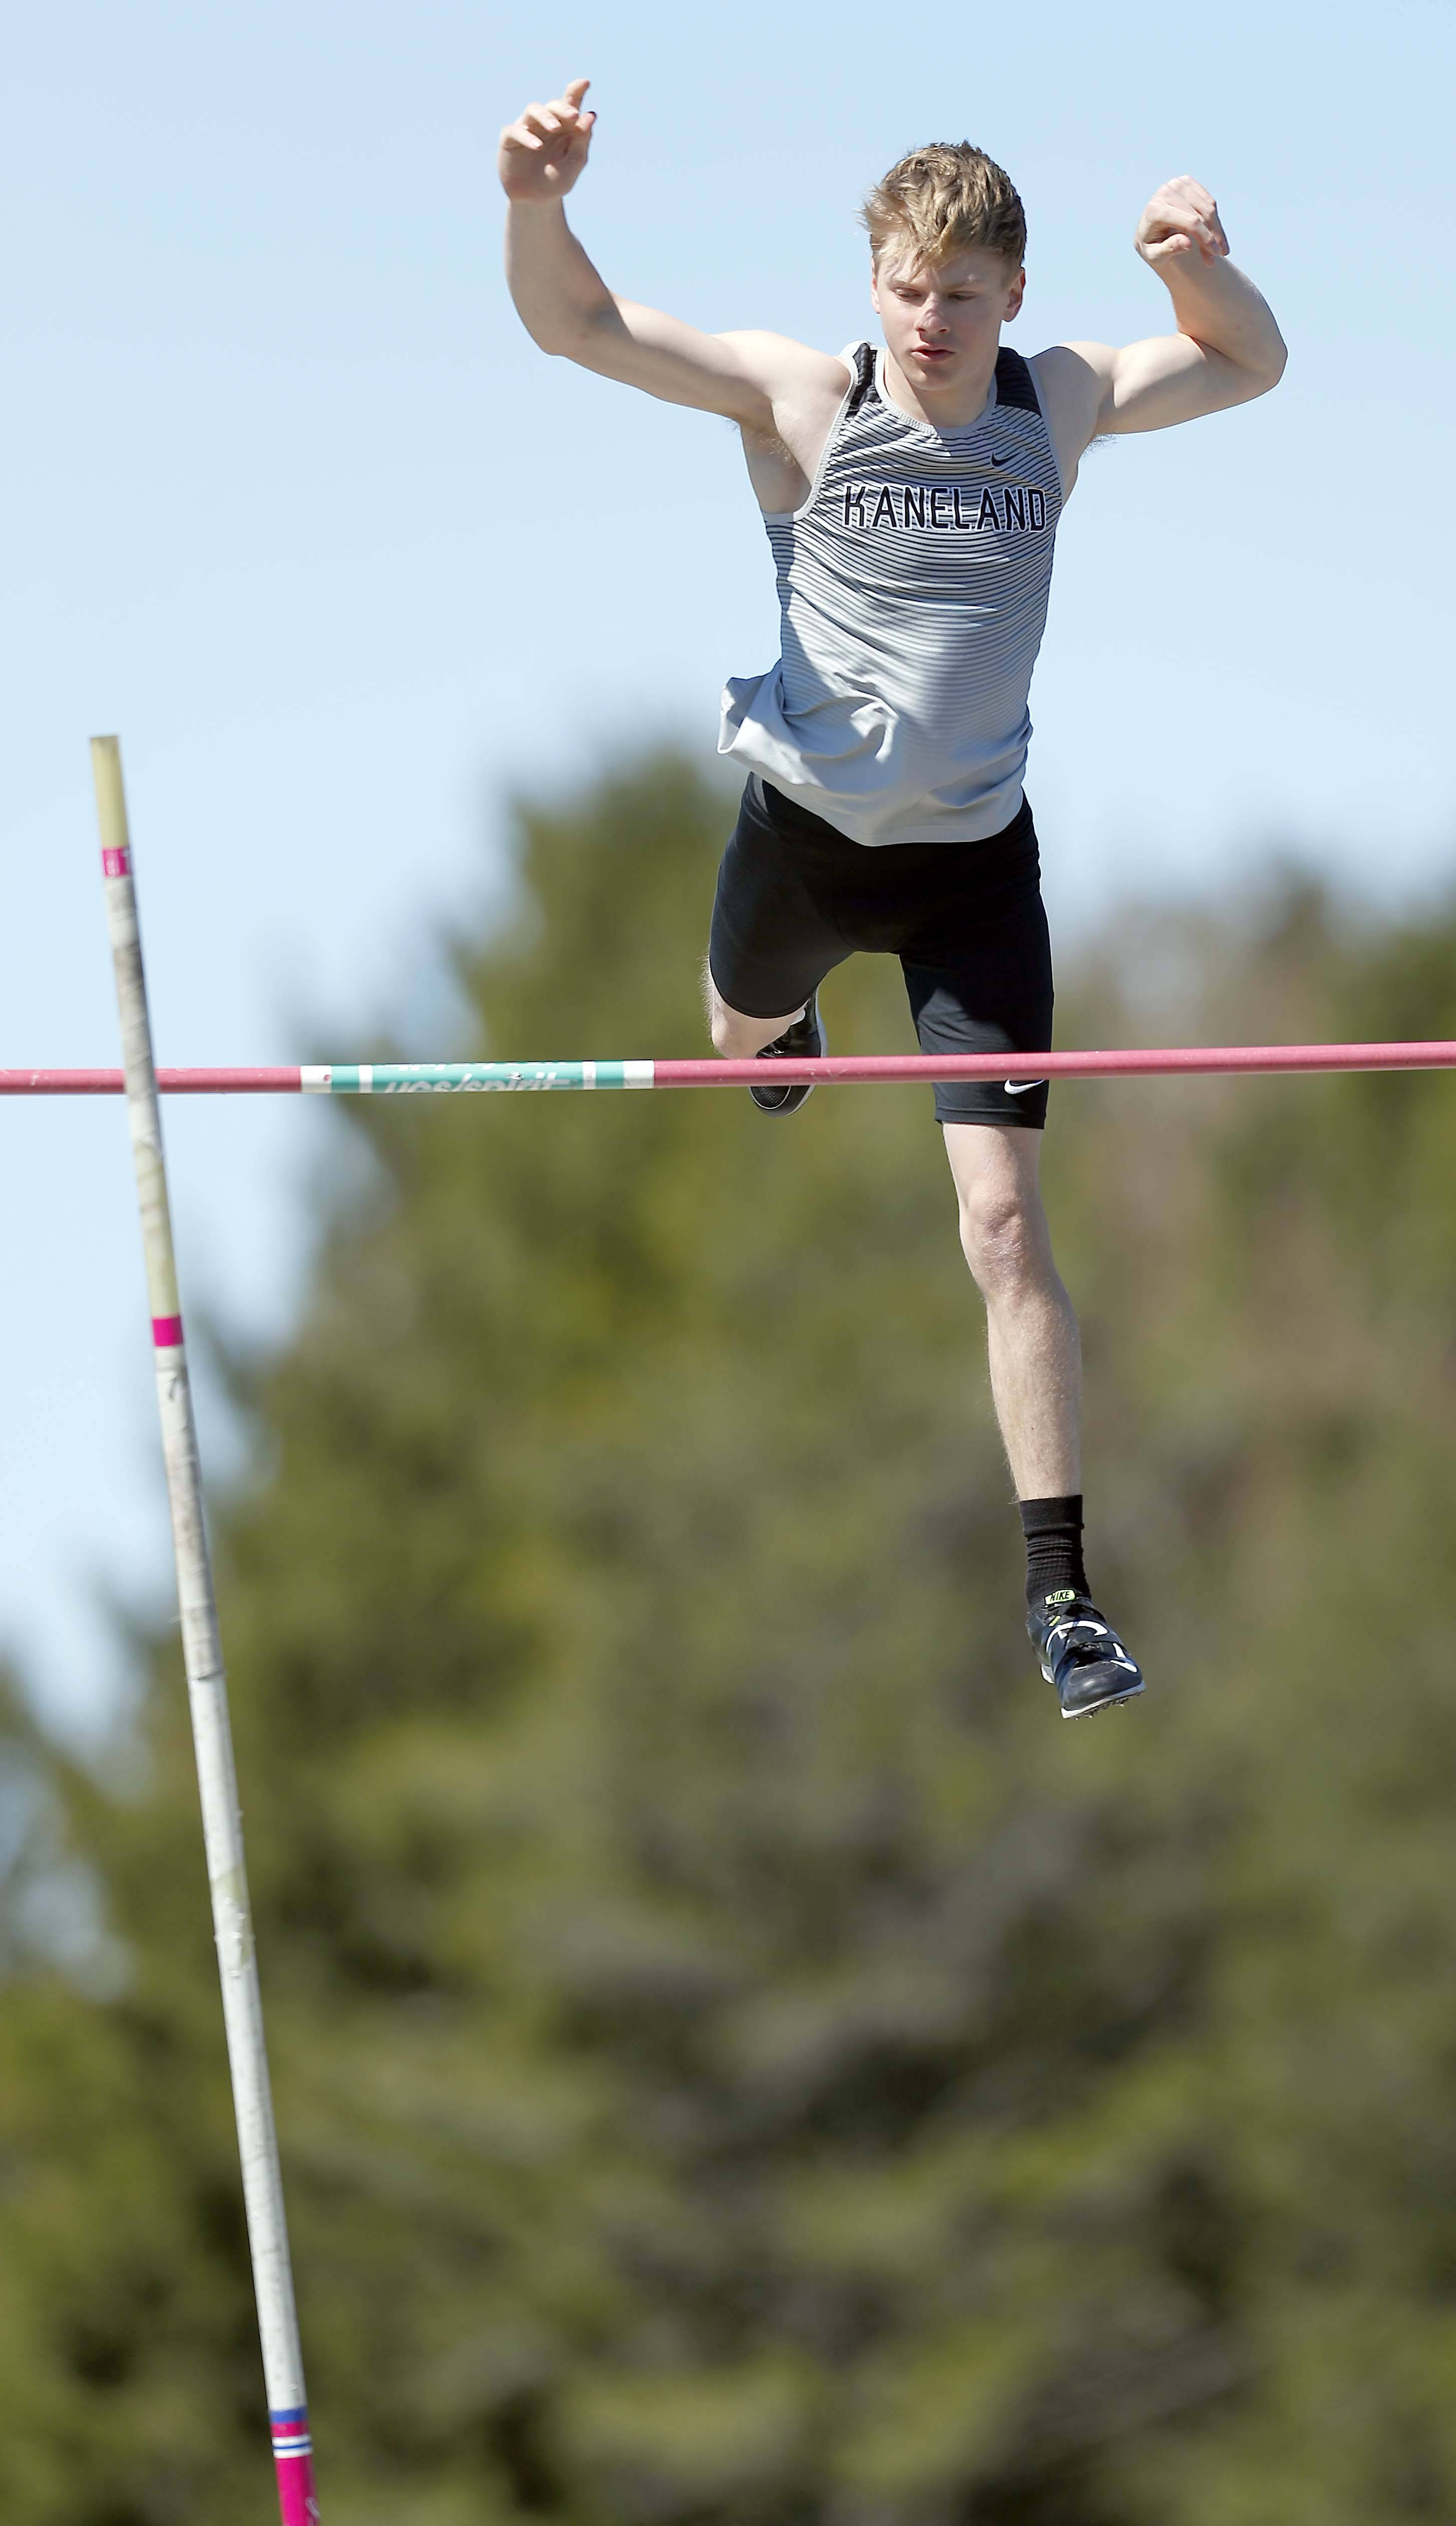 Kaneland's Ted Allen won the pole vault Saturday at the Peterson meet in Maple Park.